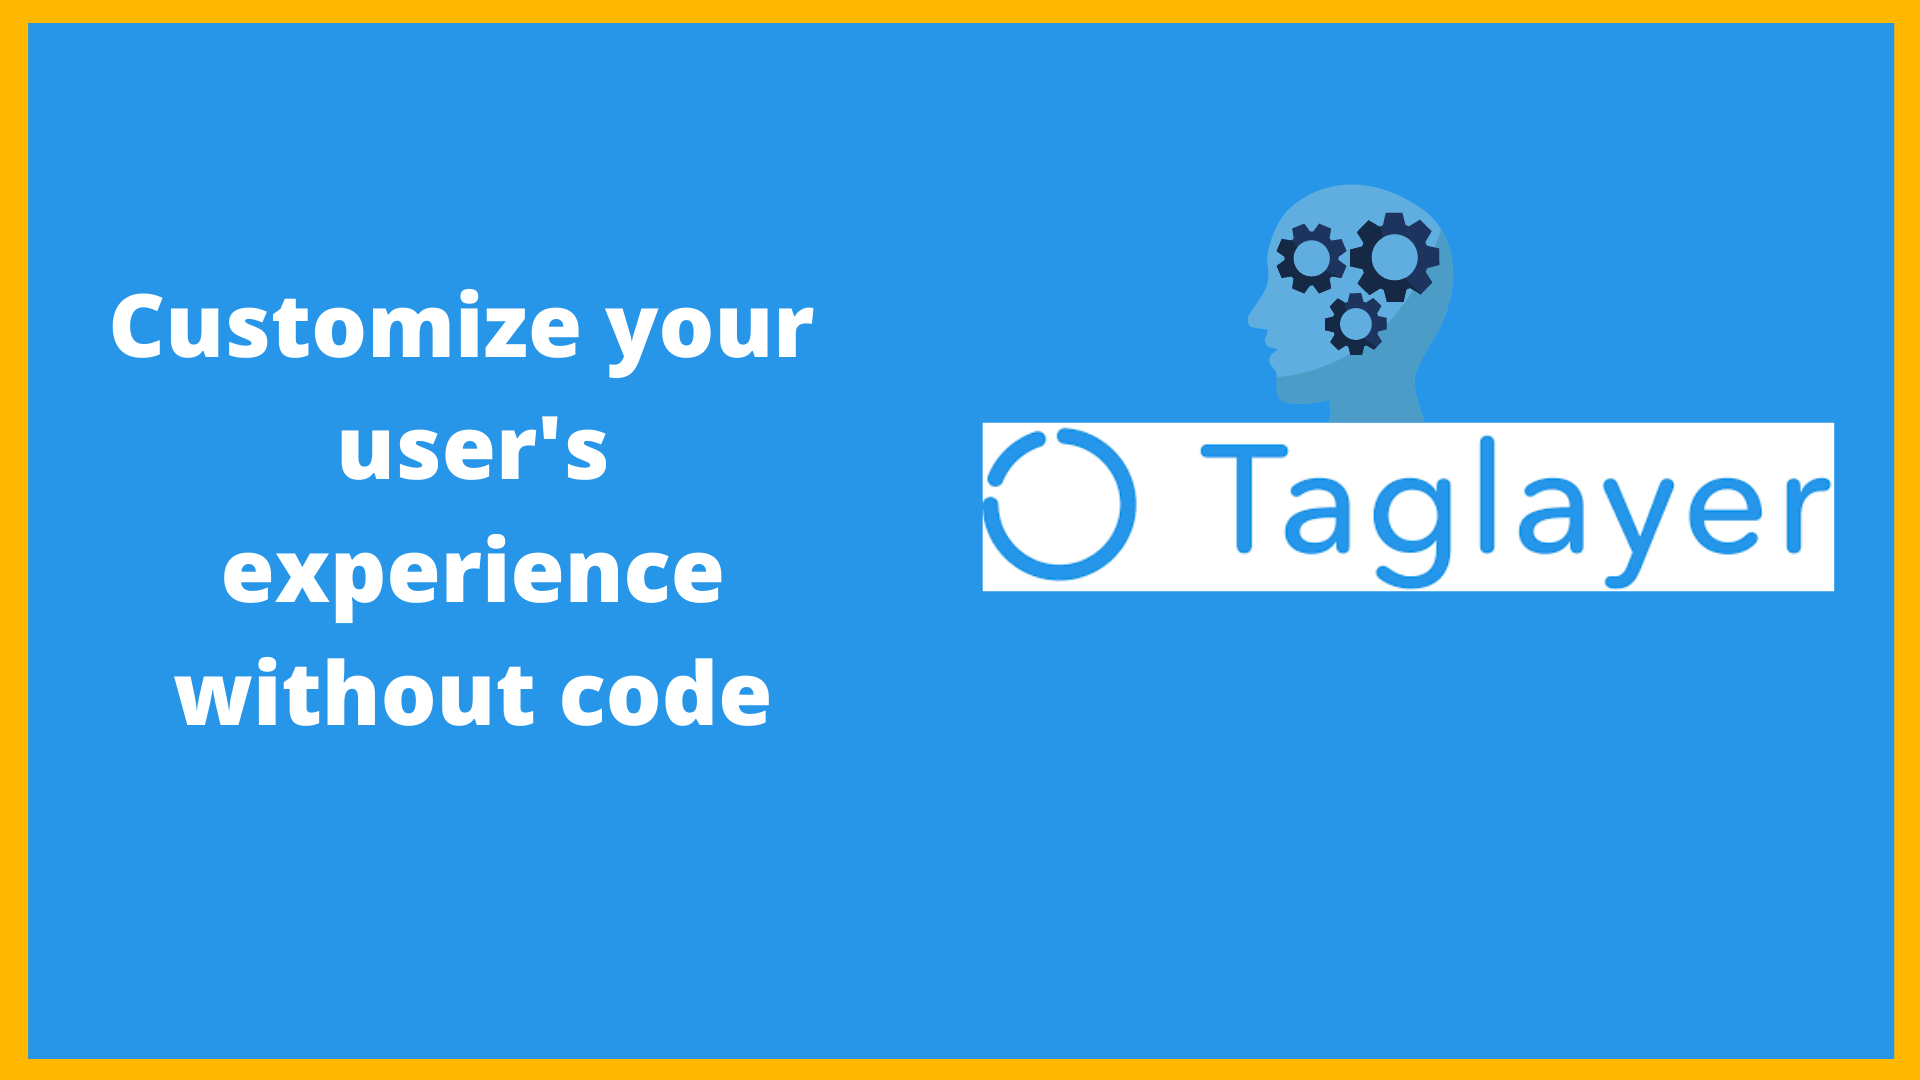 Manage your customer's experience with Taglayer